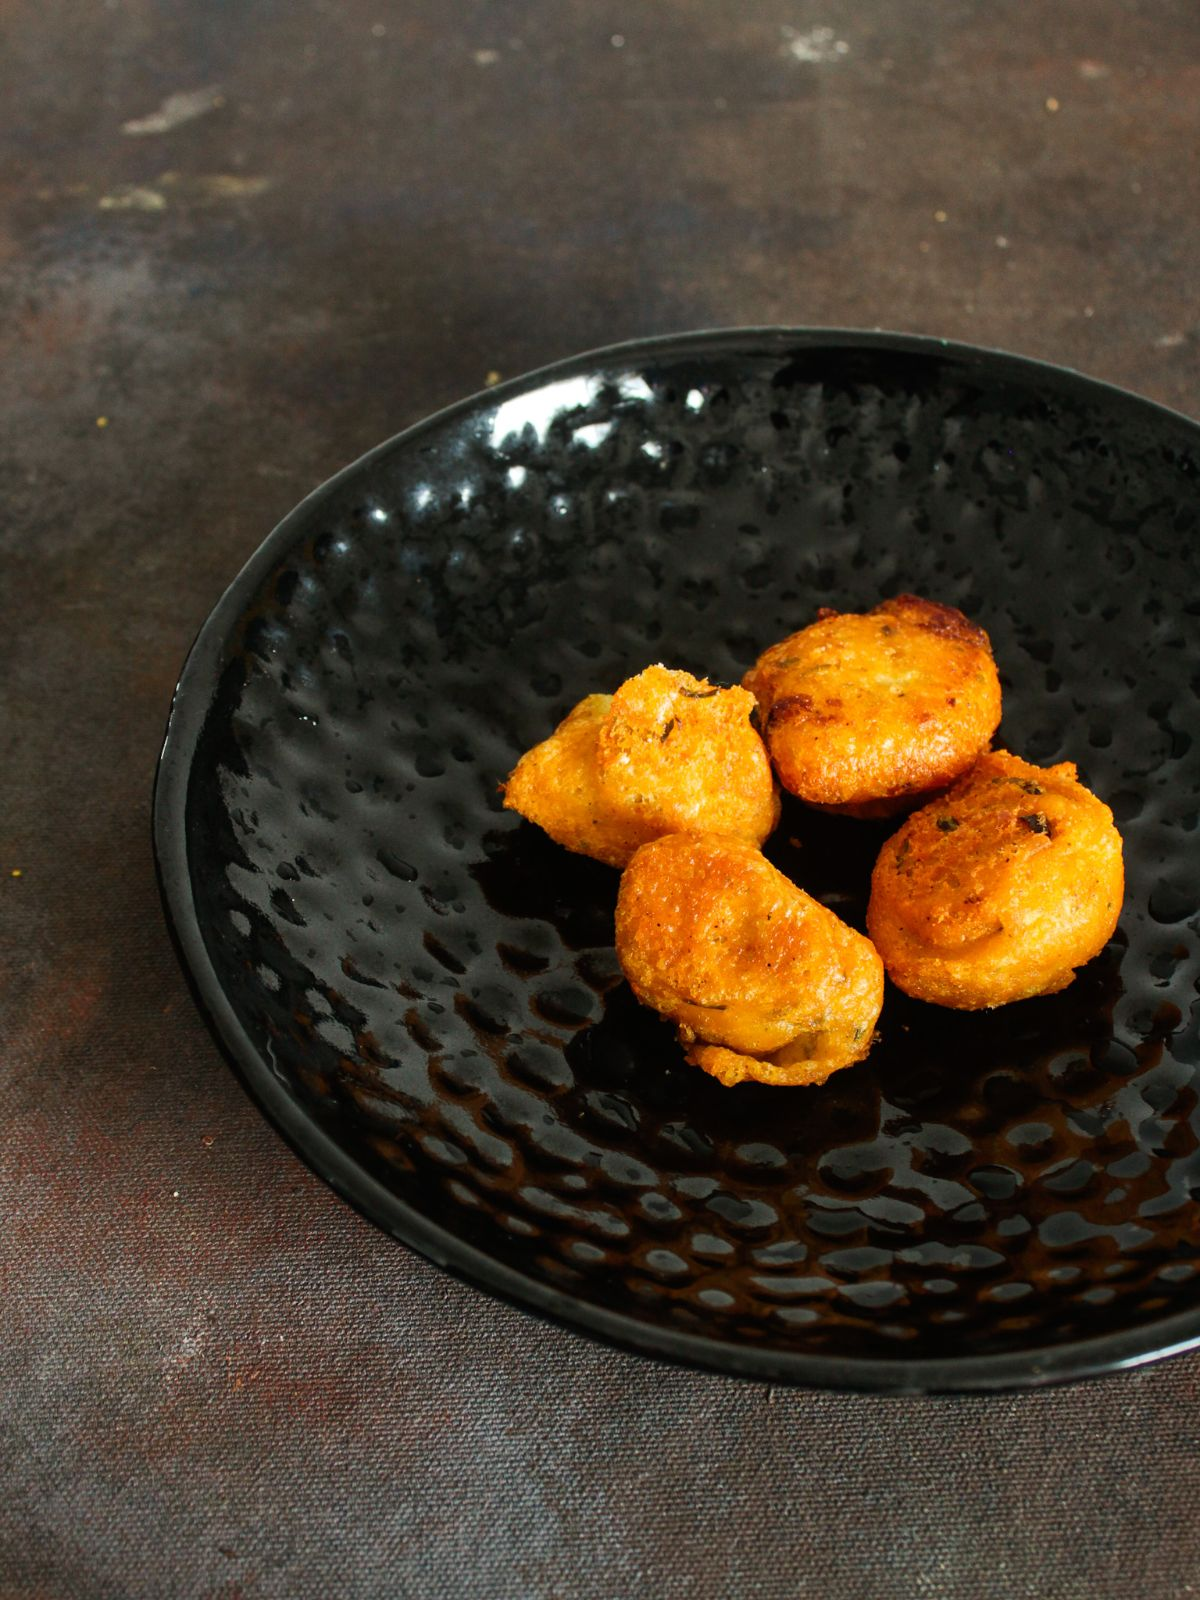 Bonda fritters in large blck bowl on gray tablecloth